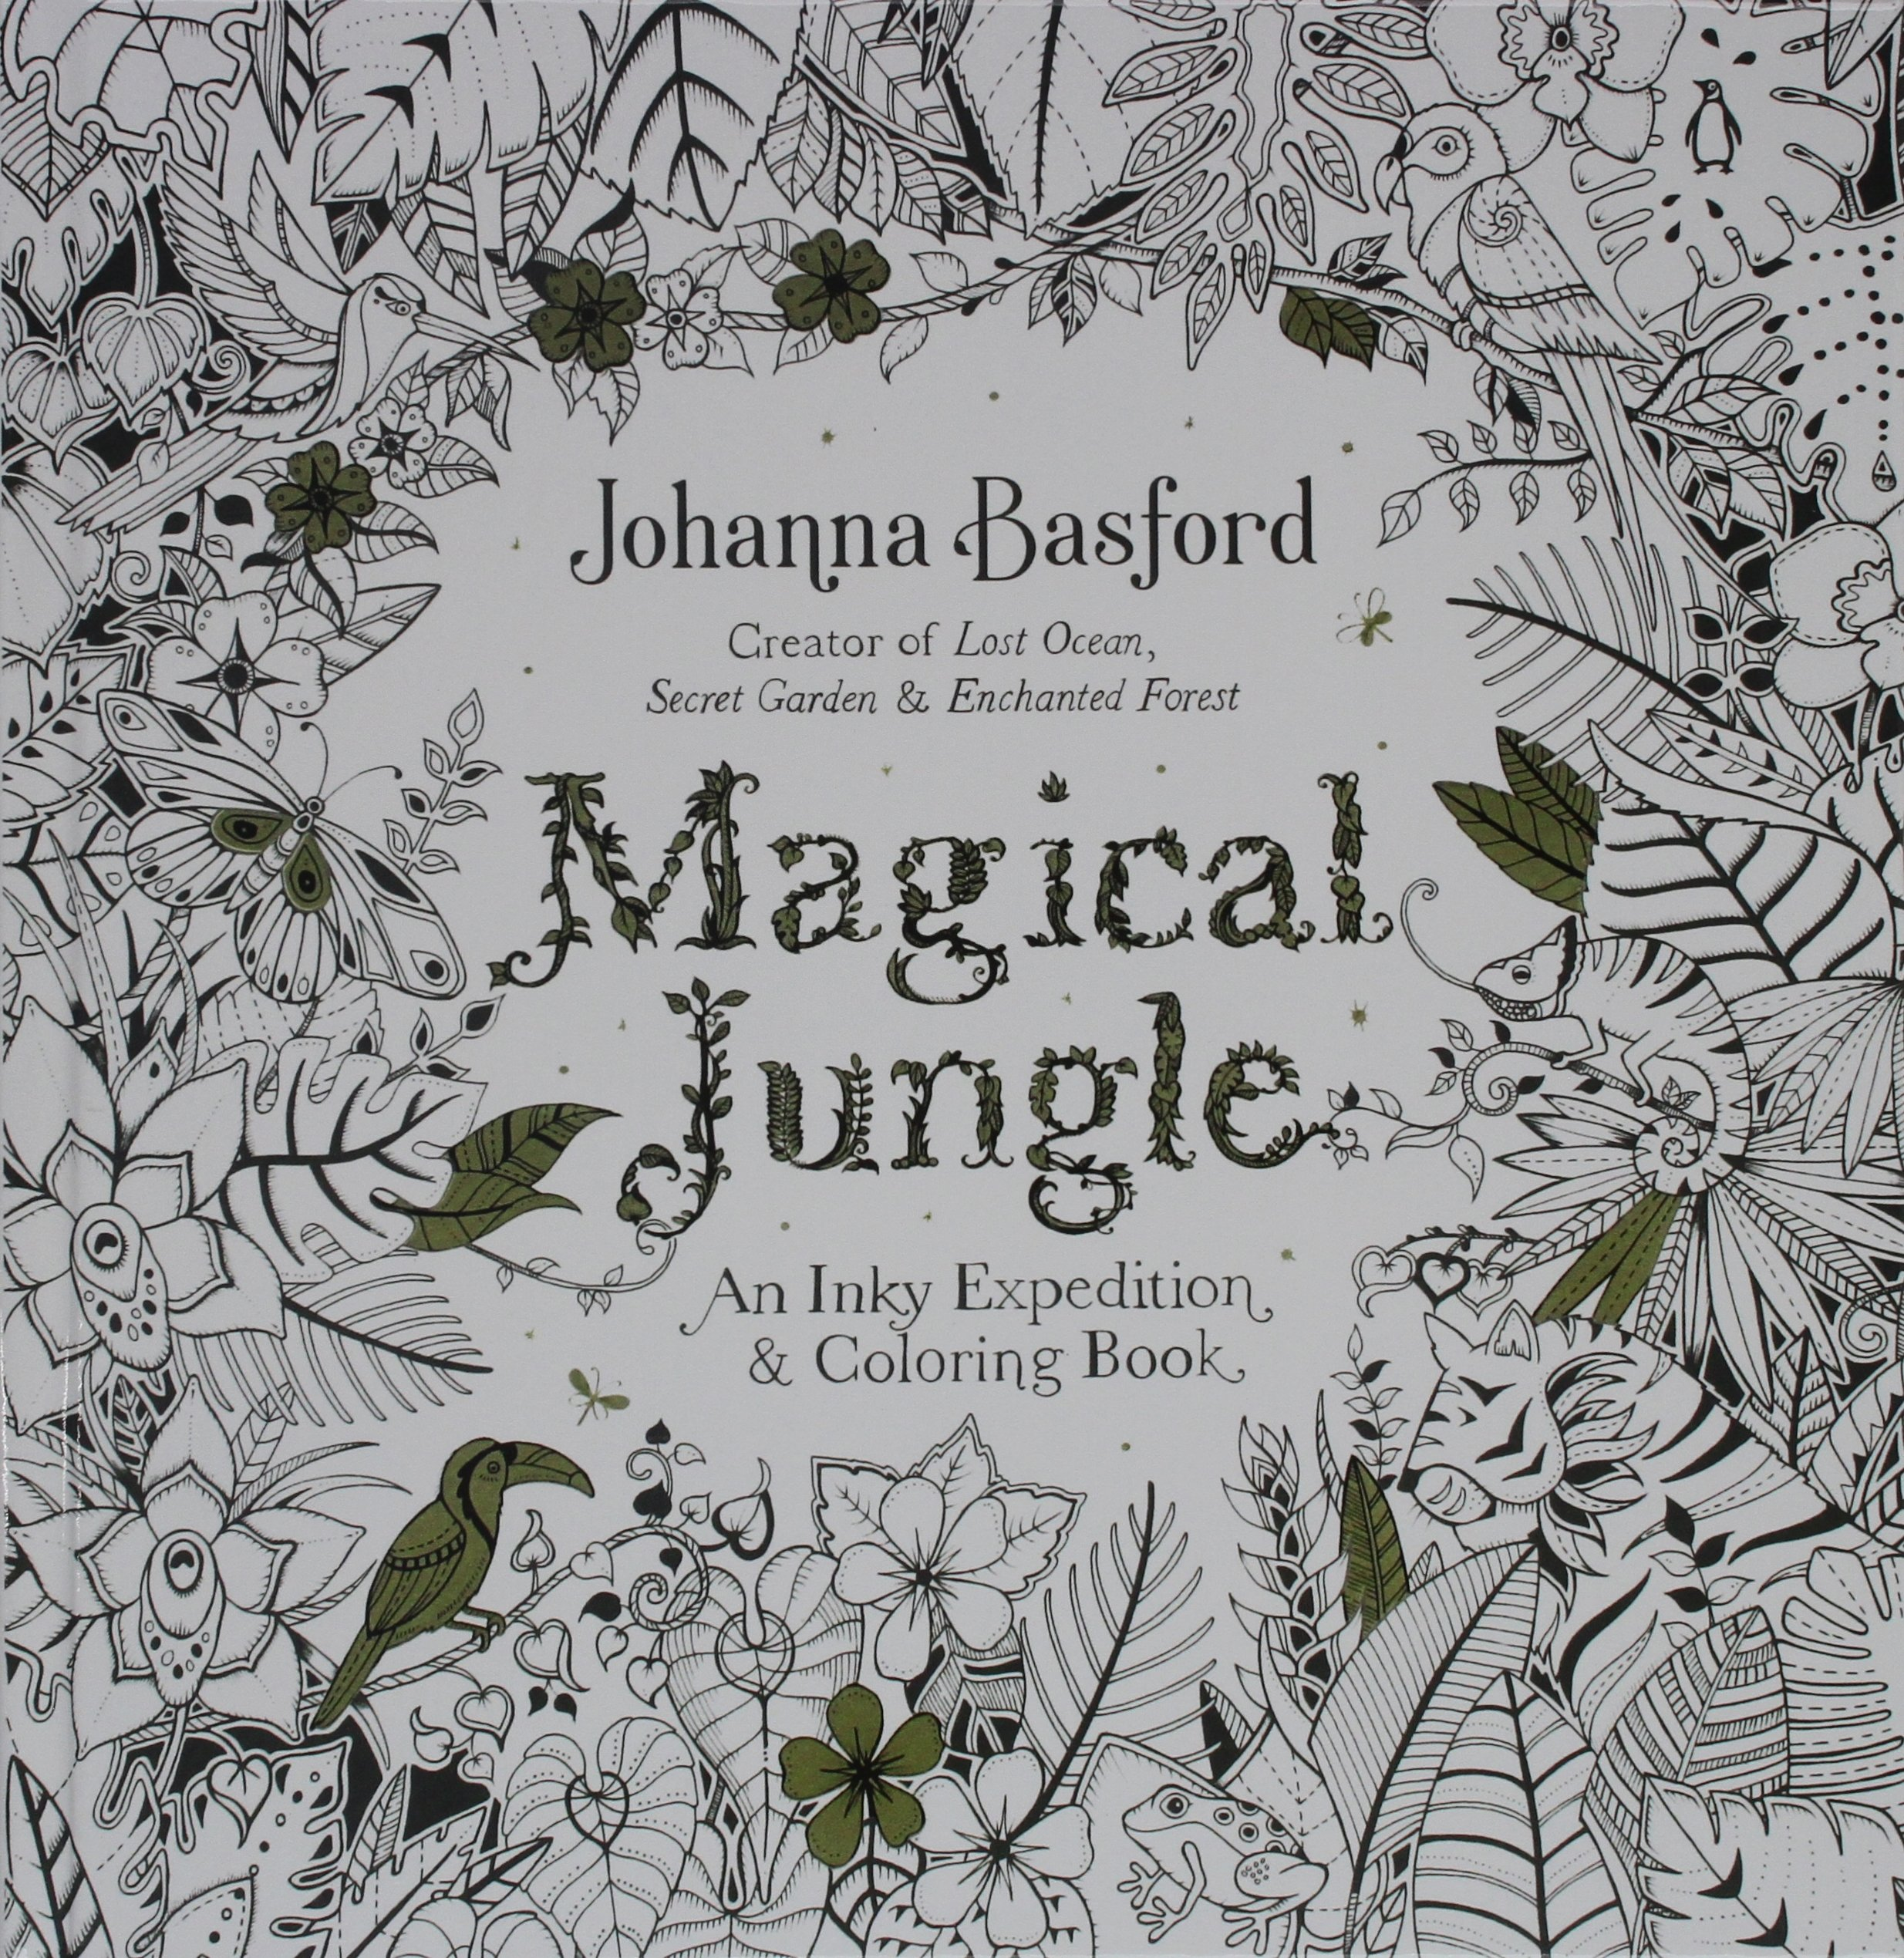 Magical Jungle An Inky Expedition And Coloring Book Johanna Basford 9780606395663 Books